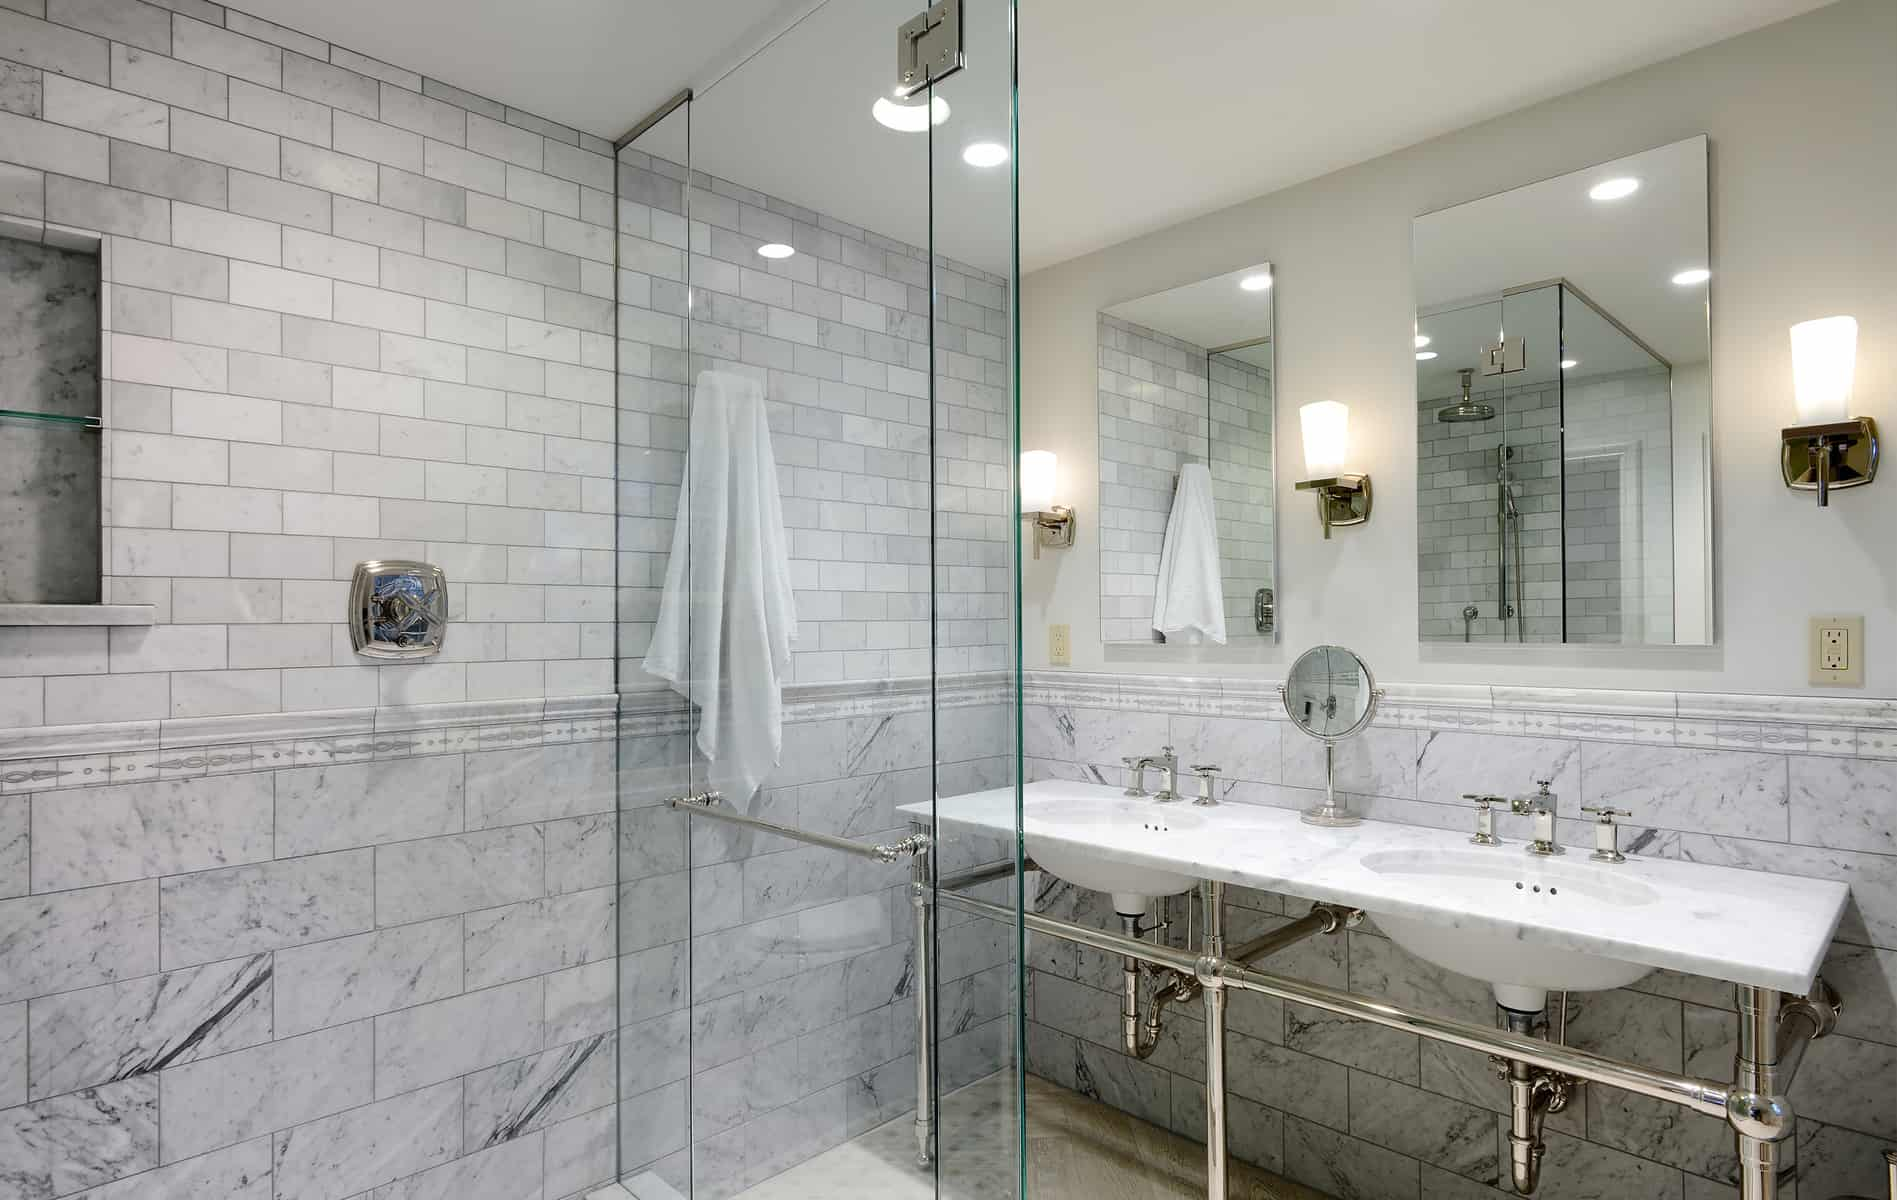 7 Smart Strategies For Bathroom Remodeling Biederman Real Estatebiederman Real Estate